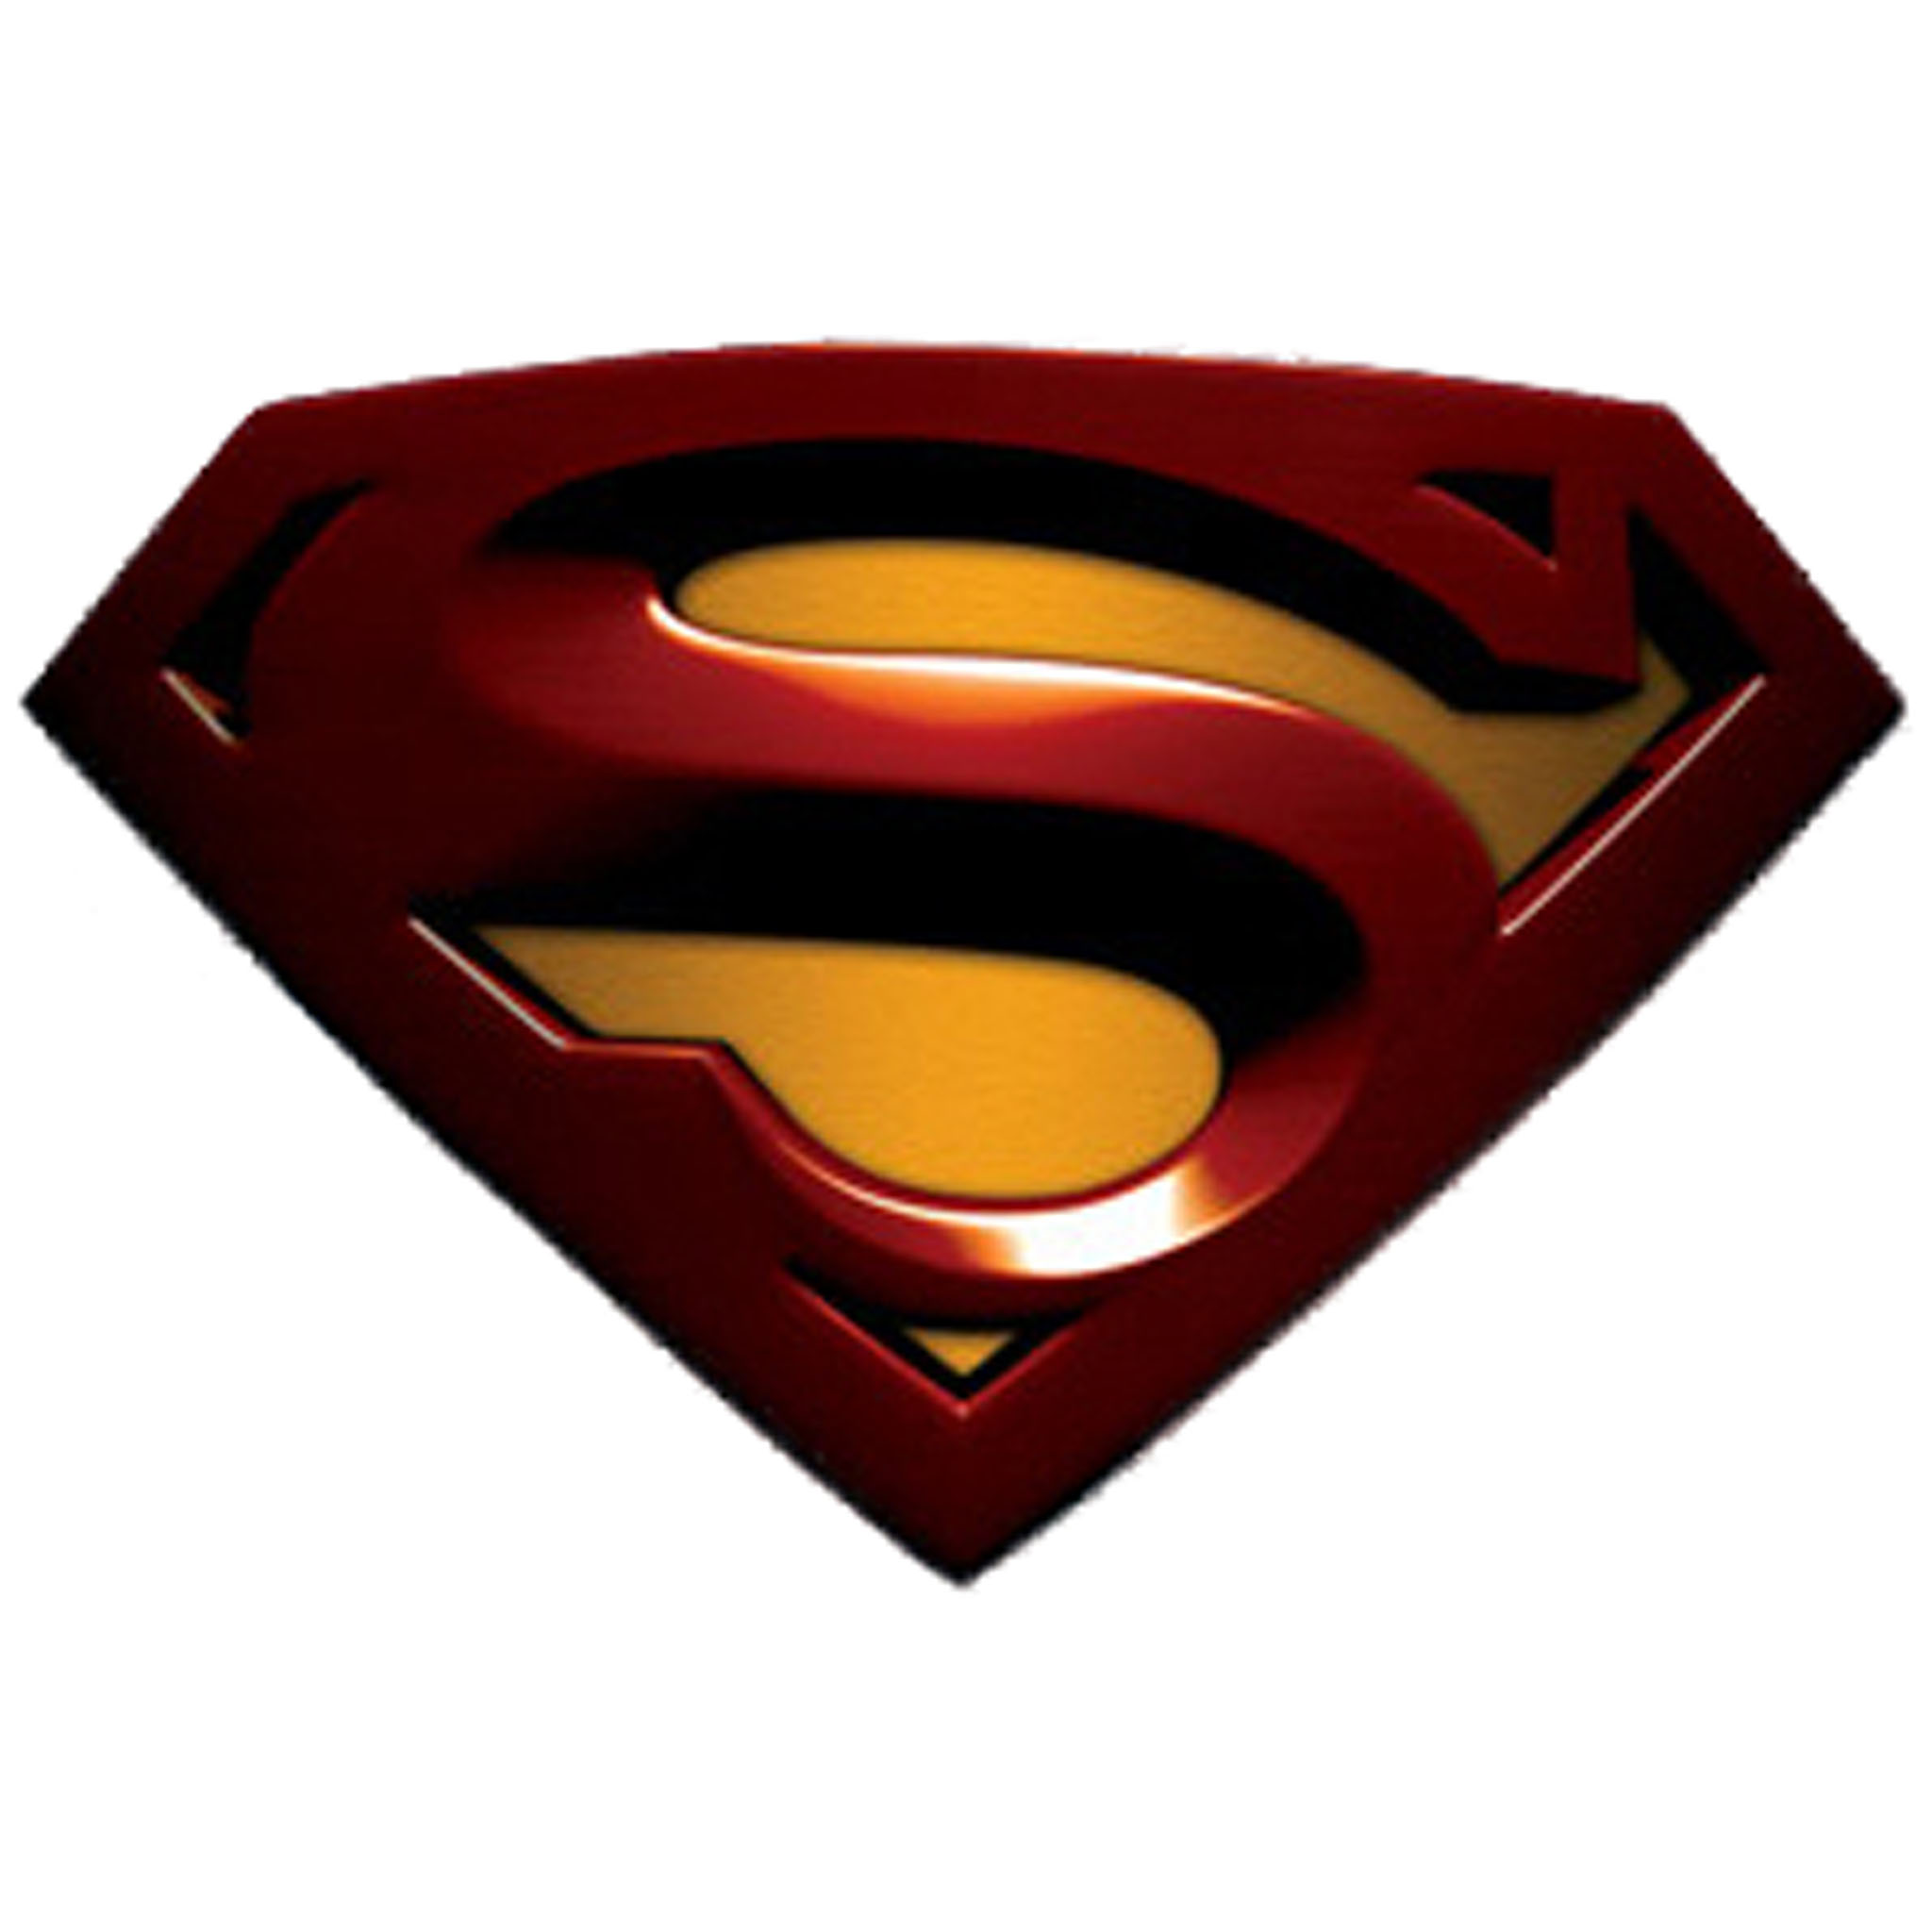 Free Download Of Superman Icon Clipart image #19784